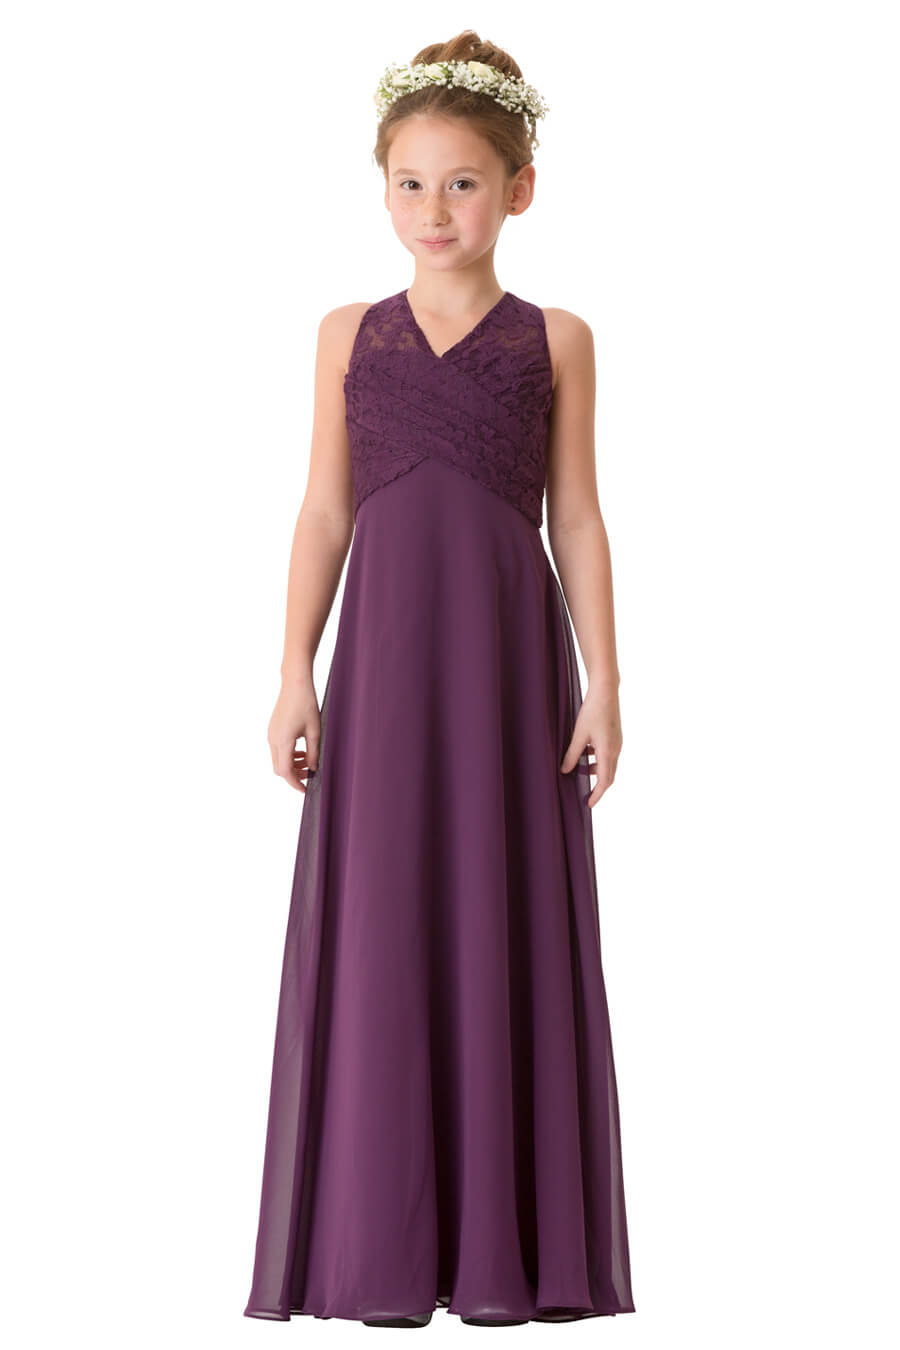 STYLE: 1680JR | Bridesmaid Dresses, Evening Gowns & Flower Girl ...